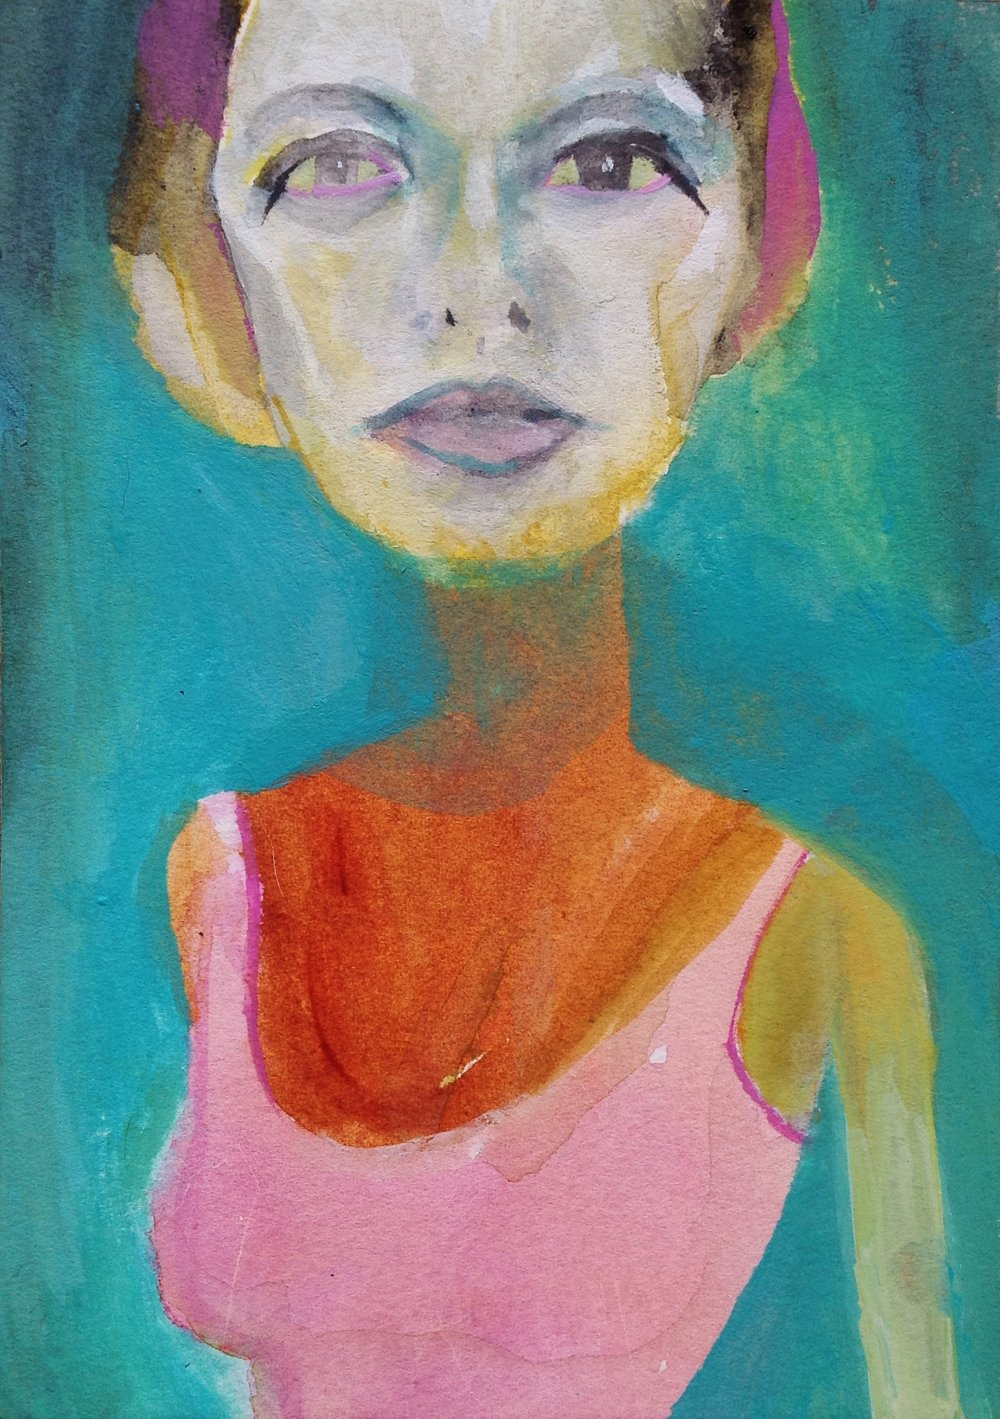 "Girl, You Got Some Skinny Arms   acrylic and watercolor on watercolor board  5""x7""  2018   SOLD (Unavailable)"